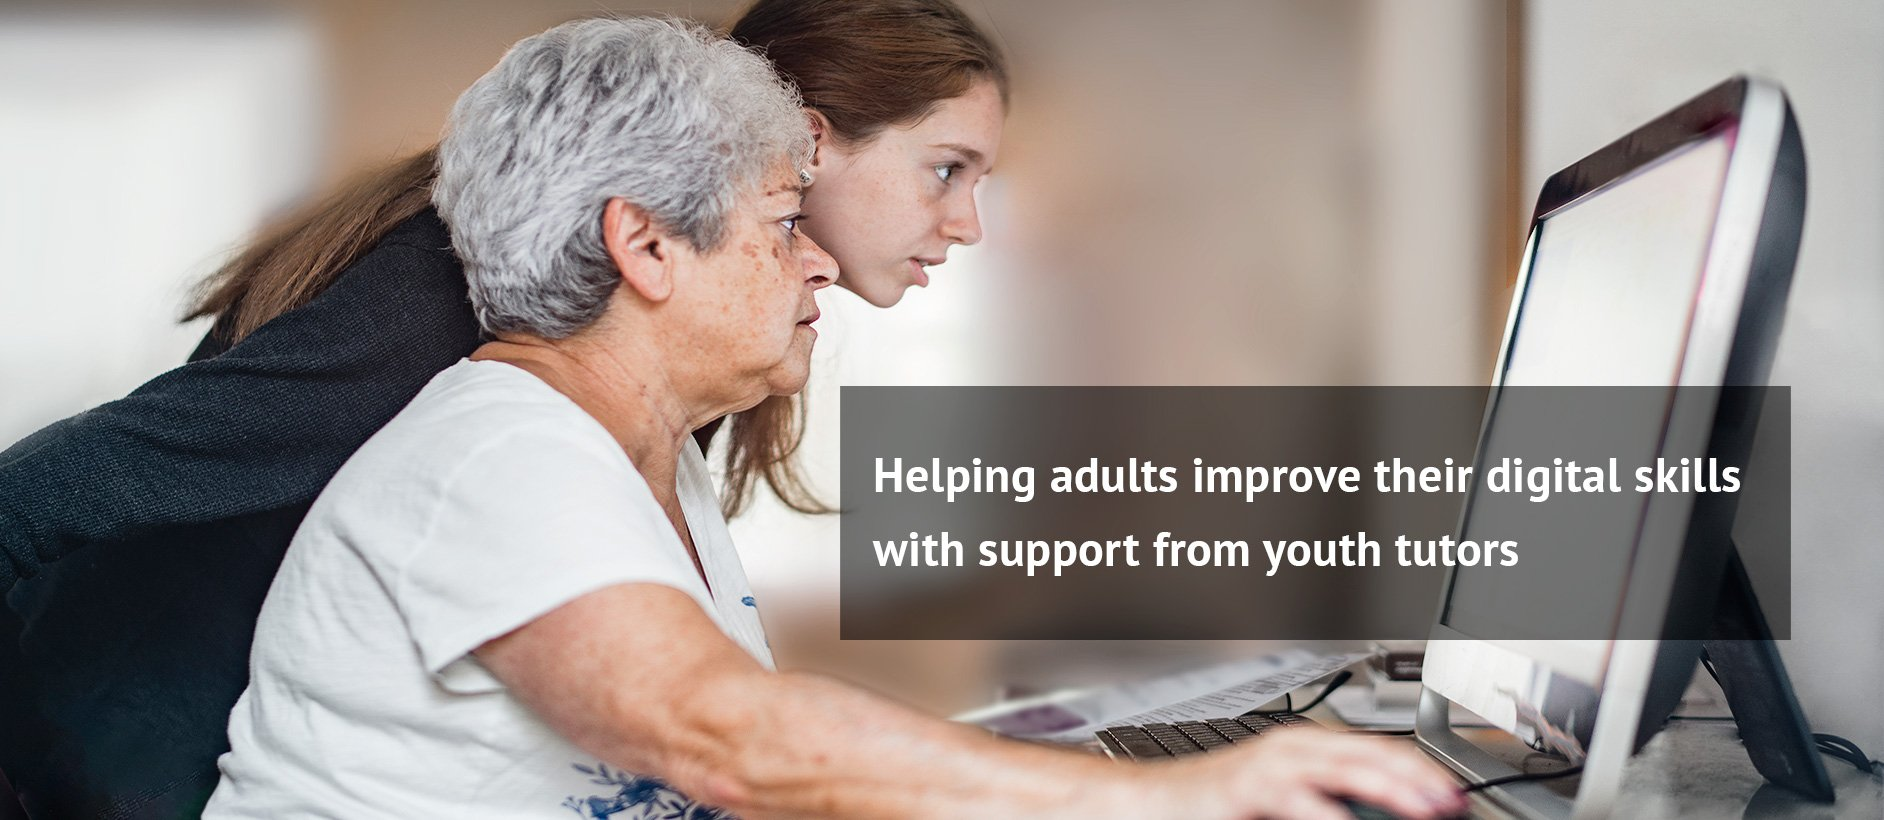 Helping adults improve their digital skills with support form youth tutors